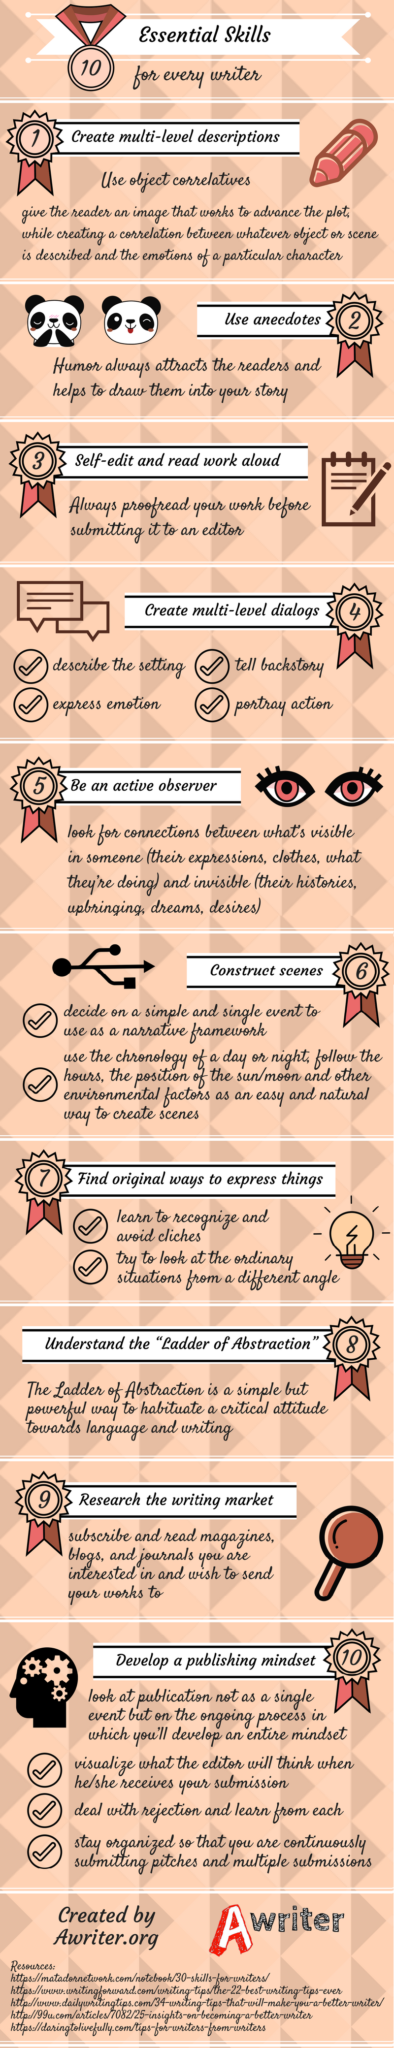 10 Essential Skills for Writers